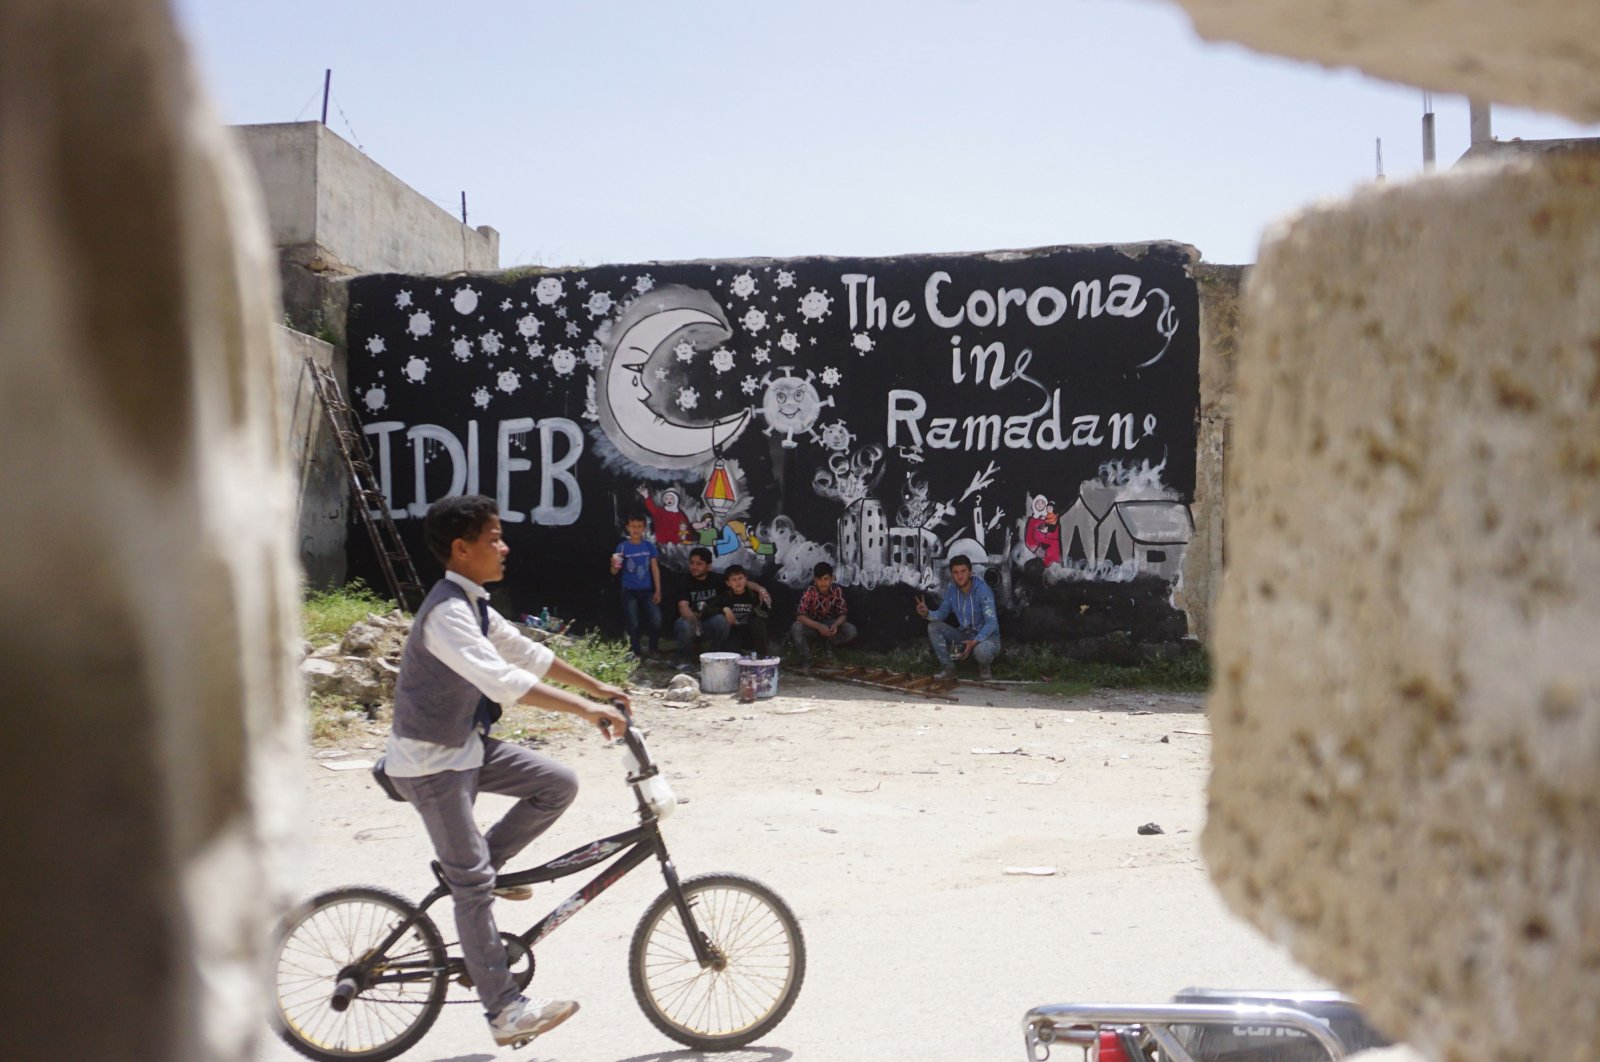 Syrian boys sit in front of a mural by artist Aziz al-Asmar (unseen) depicting the situation of displaced Syrians in camps amid the COVID-19 pandemic ahead of the holy fasting month of Ramadan, in the town of Binnish in Syria's northwestern Idlib province on April 23, 2020. (AFP)